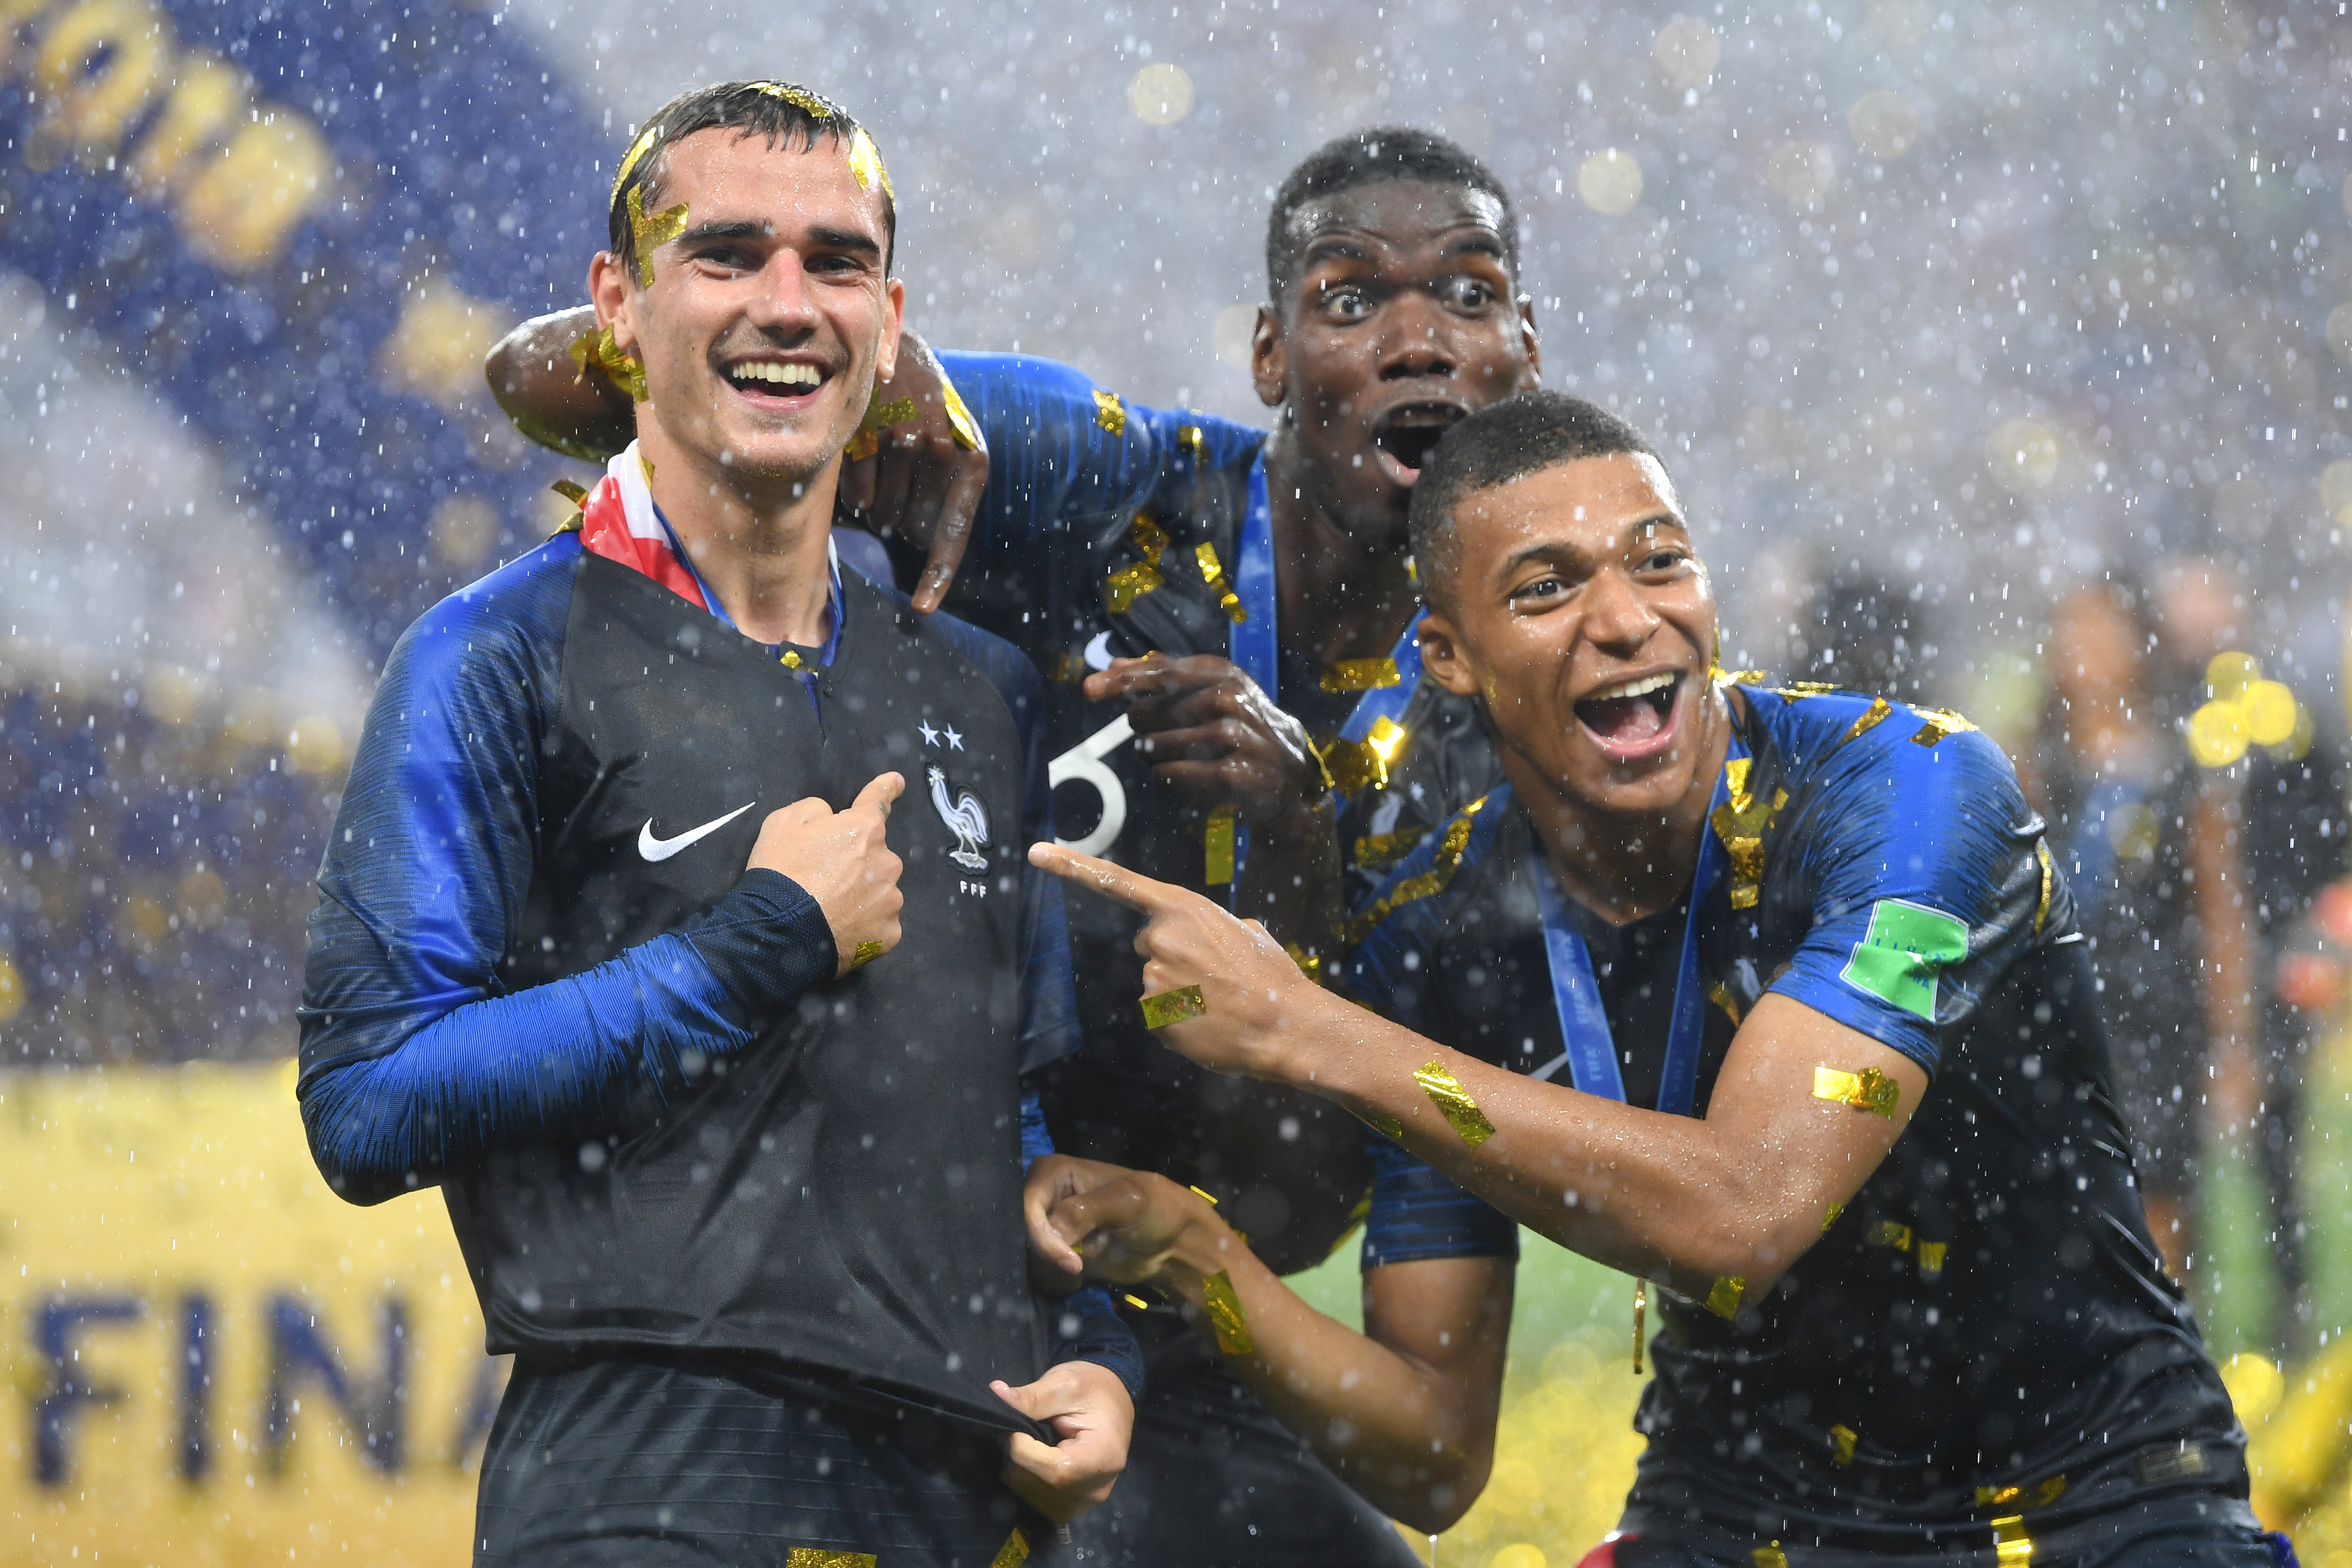 Antoine Griezmann, Paul Pogba, and Kylian Mbappe - France - 2018 FIFA World Cup Russia Final